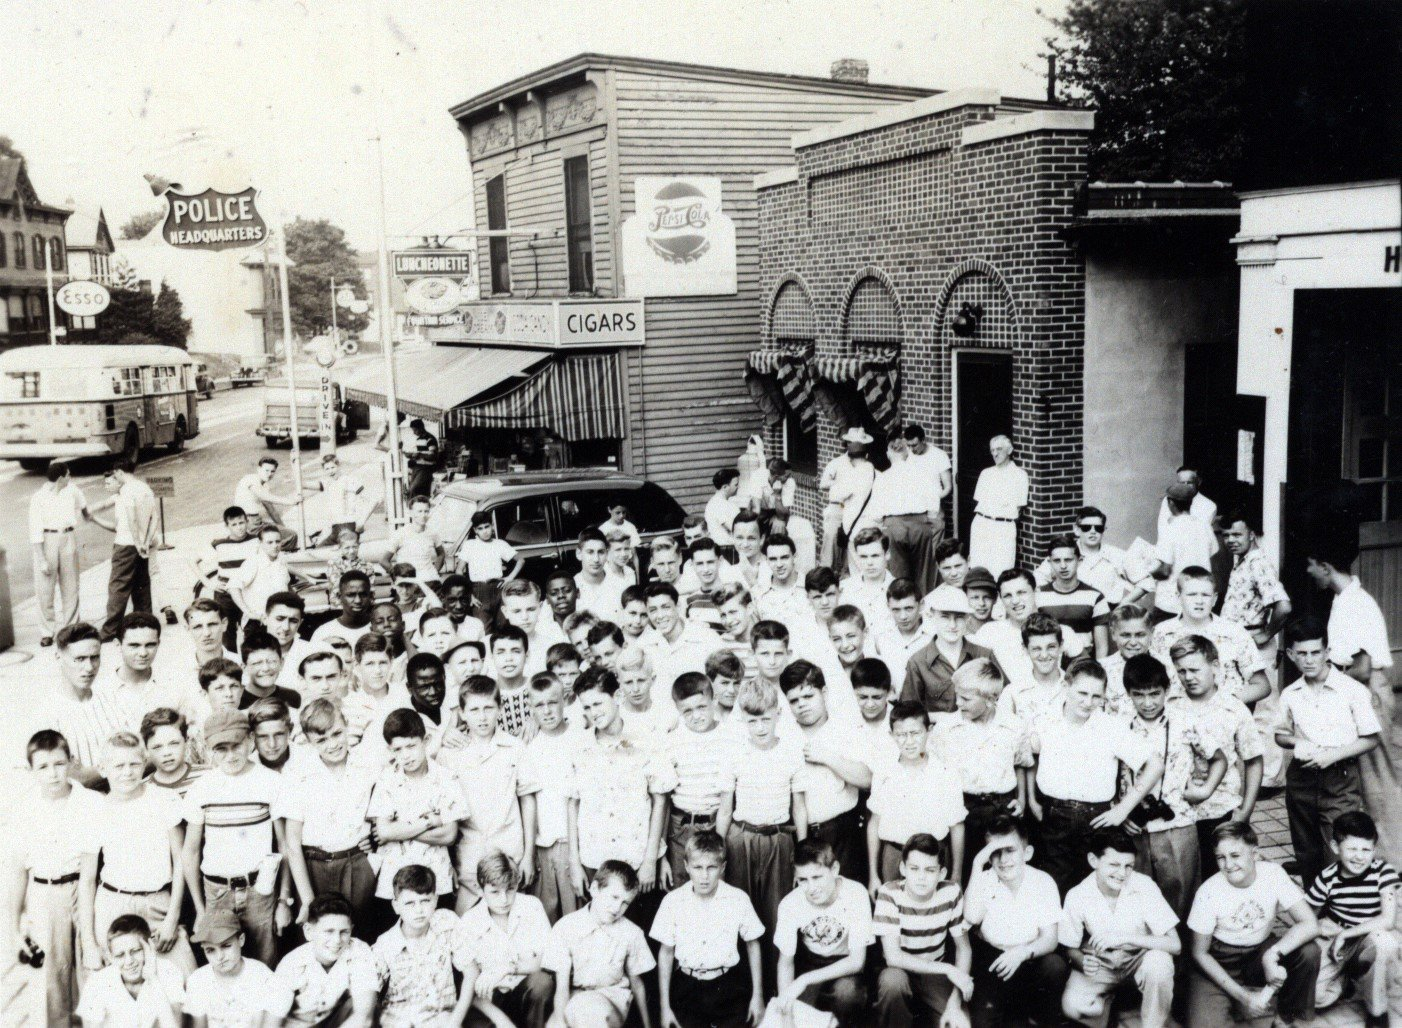 This is a photo from 1949 showing a group of children wait to be picked up for a Yankee's game for a sponsored night out by the Highland Park Police Department, which was located in the 1-story brick building in the center. In 2018-19, this Alexander Merc